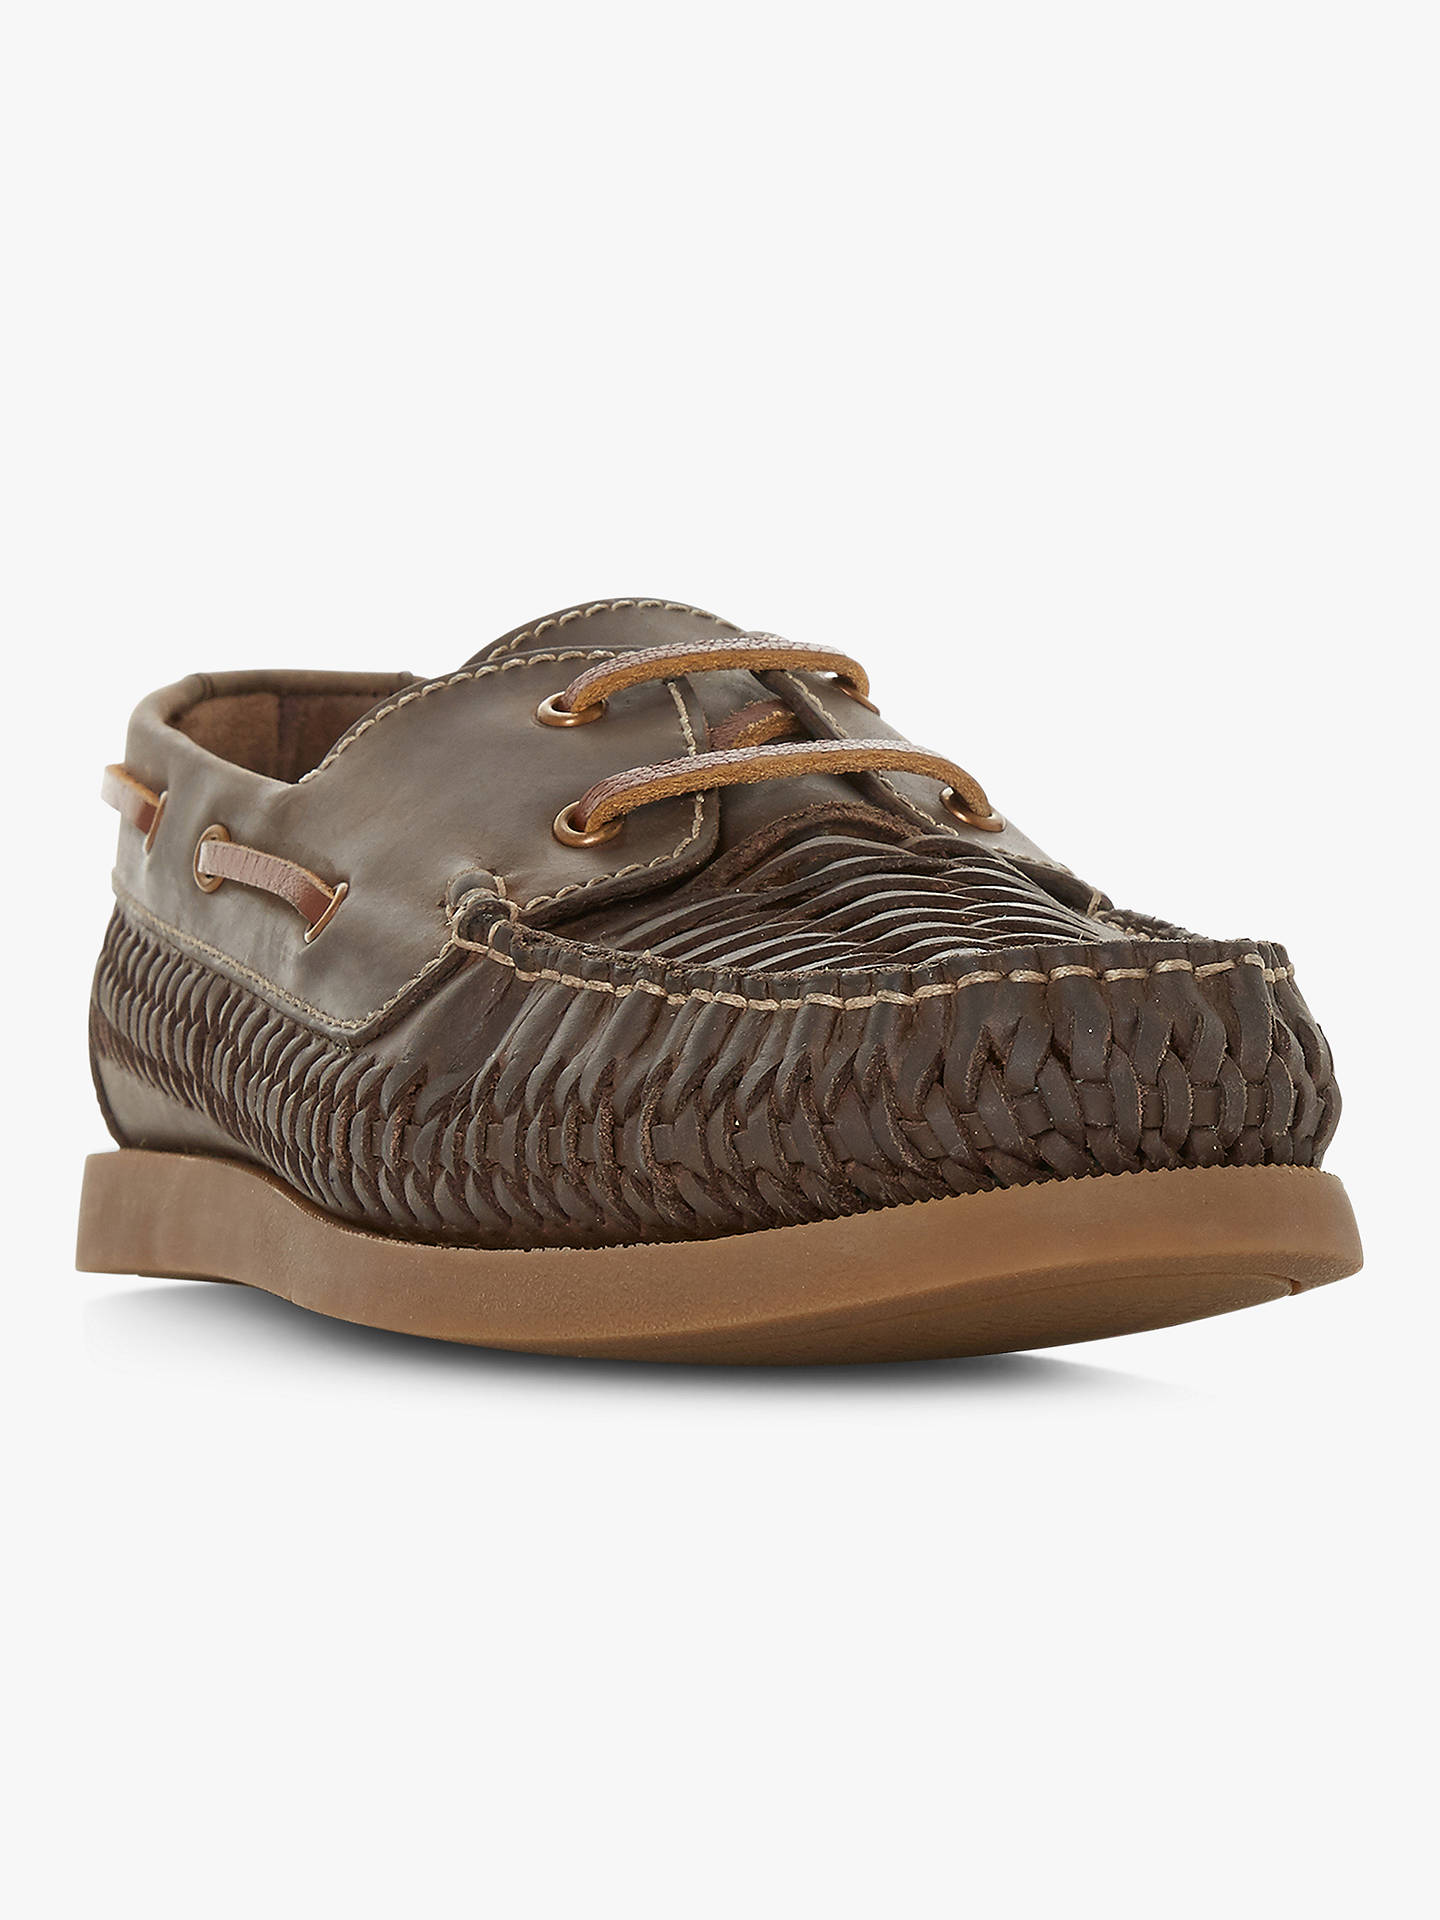 Buy Bertie Billfish Boat Shoes, Brown Leather, 8 Online at johnlewis.com